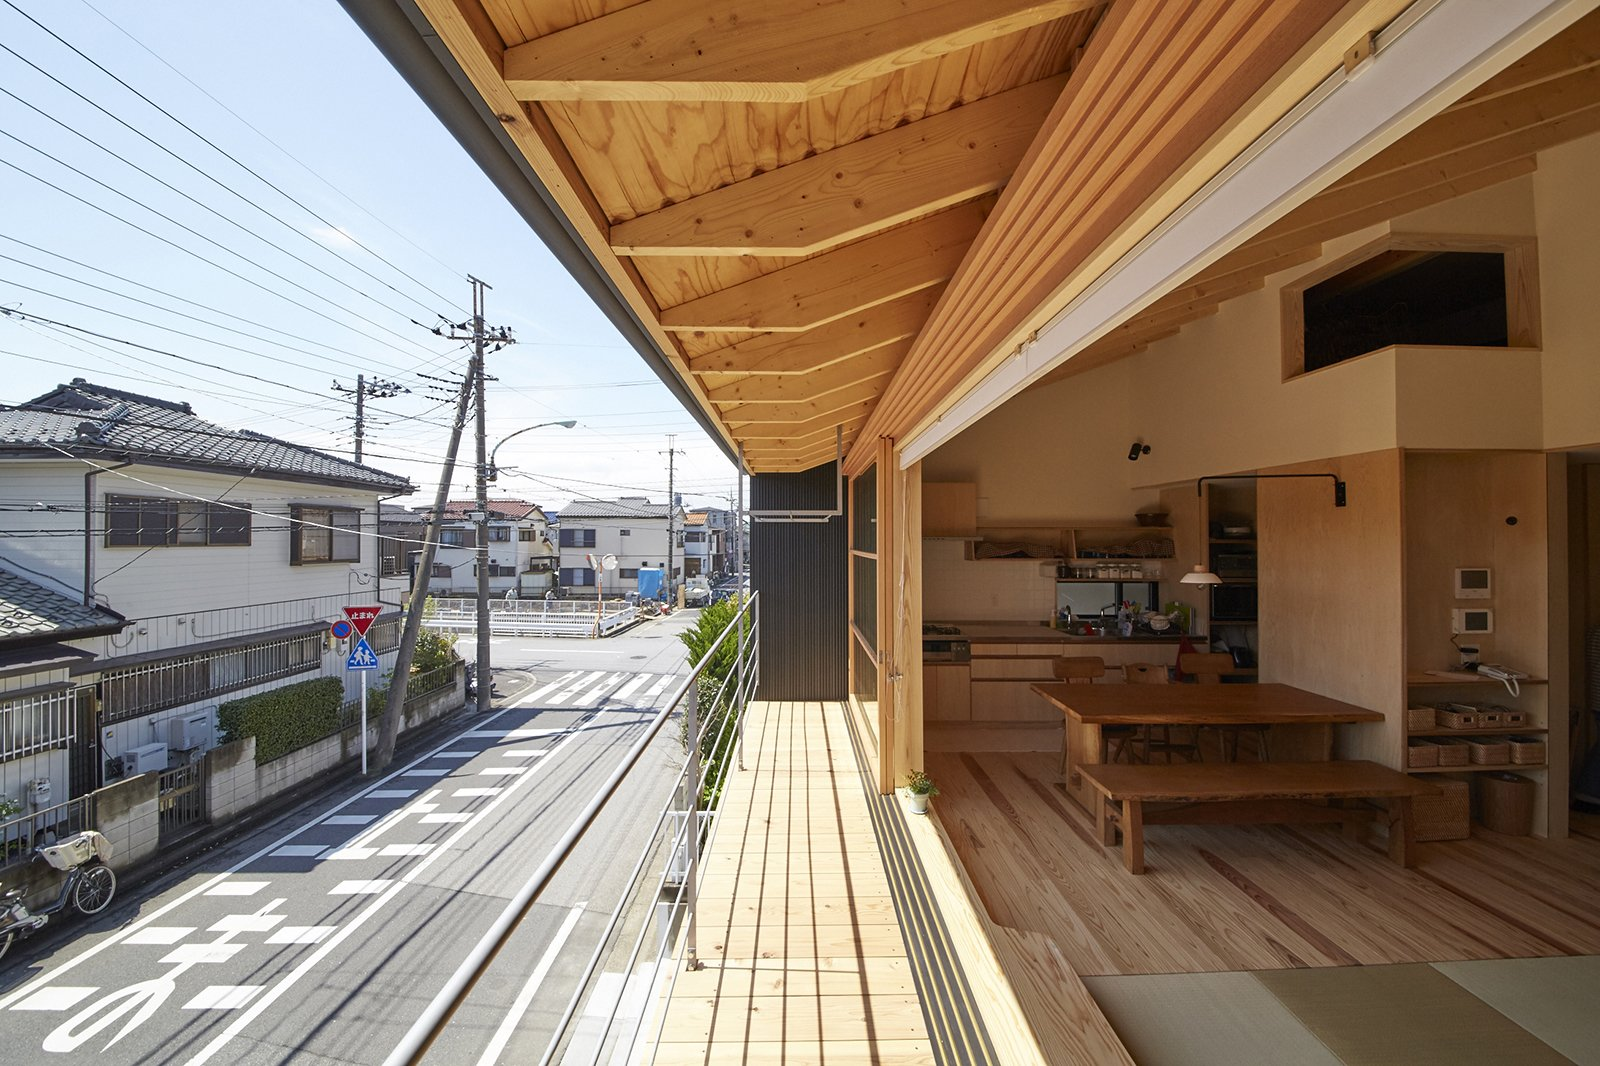 The sliding wood and glass panel alludes to traditional Japanese shoji screens—sliding partitions constructed of wood and translucent paper. For the house's wooden construction, co-design studio used Japanese cedar, sugi, and Japanese cypress, hinoki, both local to the larger Saitama prefecture.